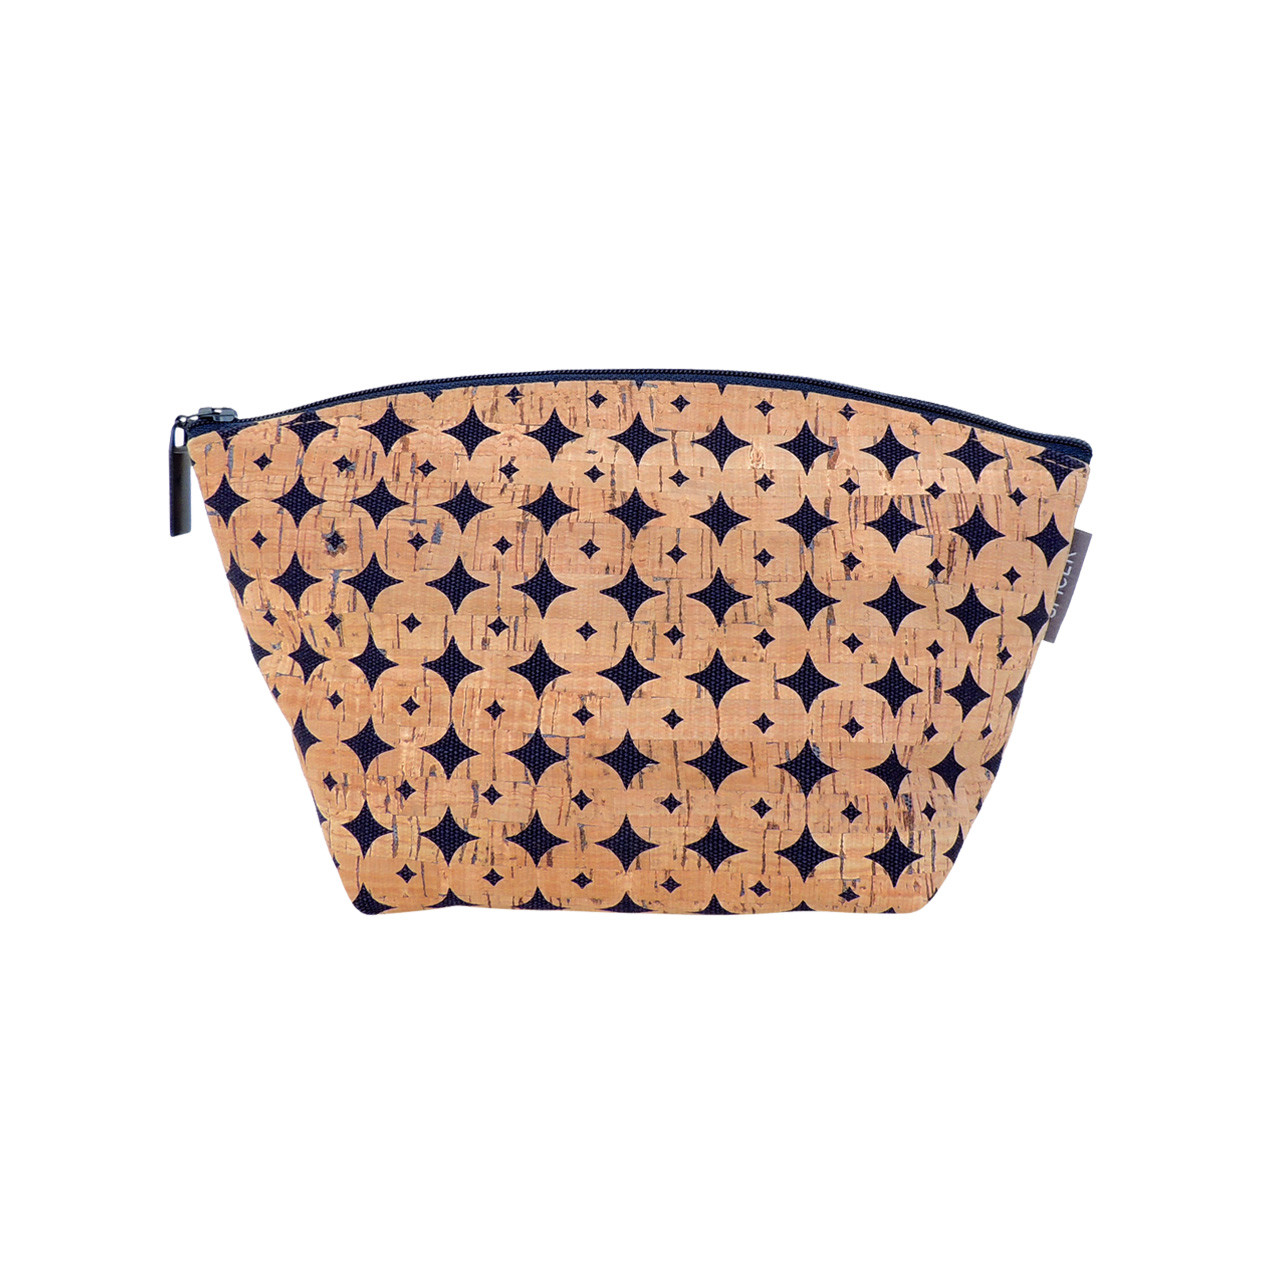 Large Standing Pouch in Navy Cork Dots